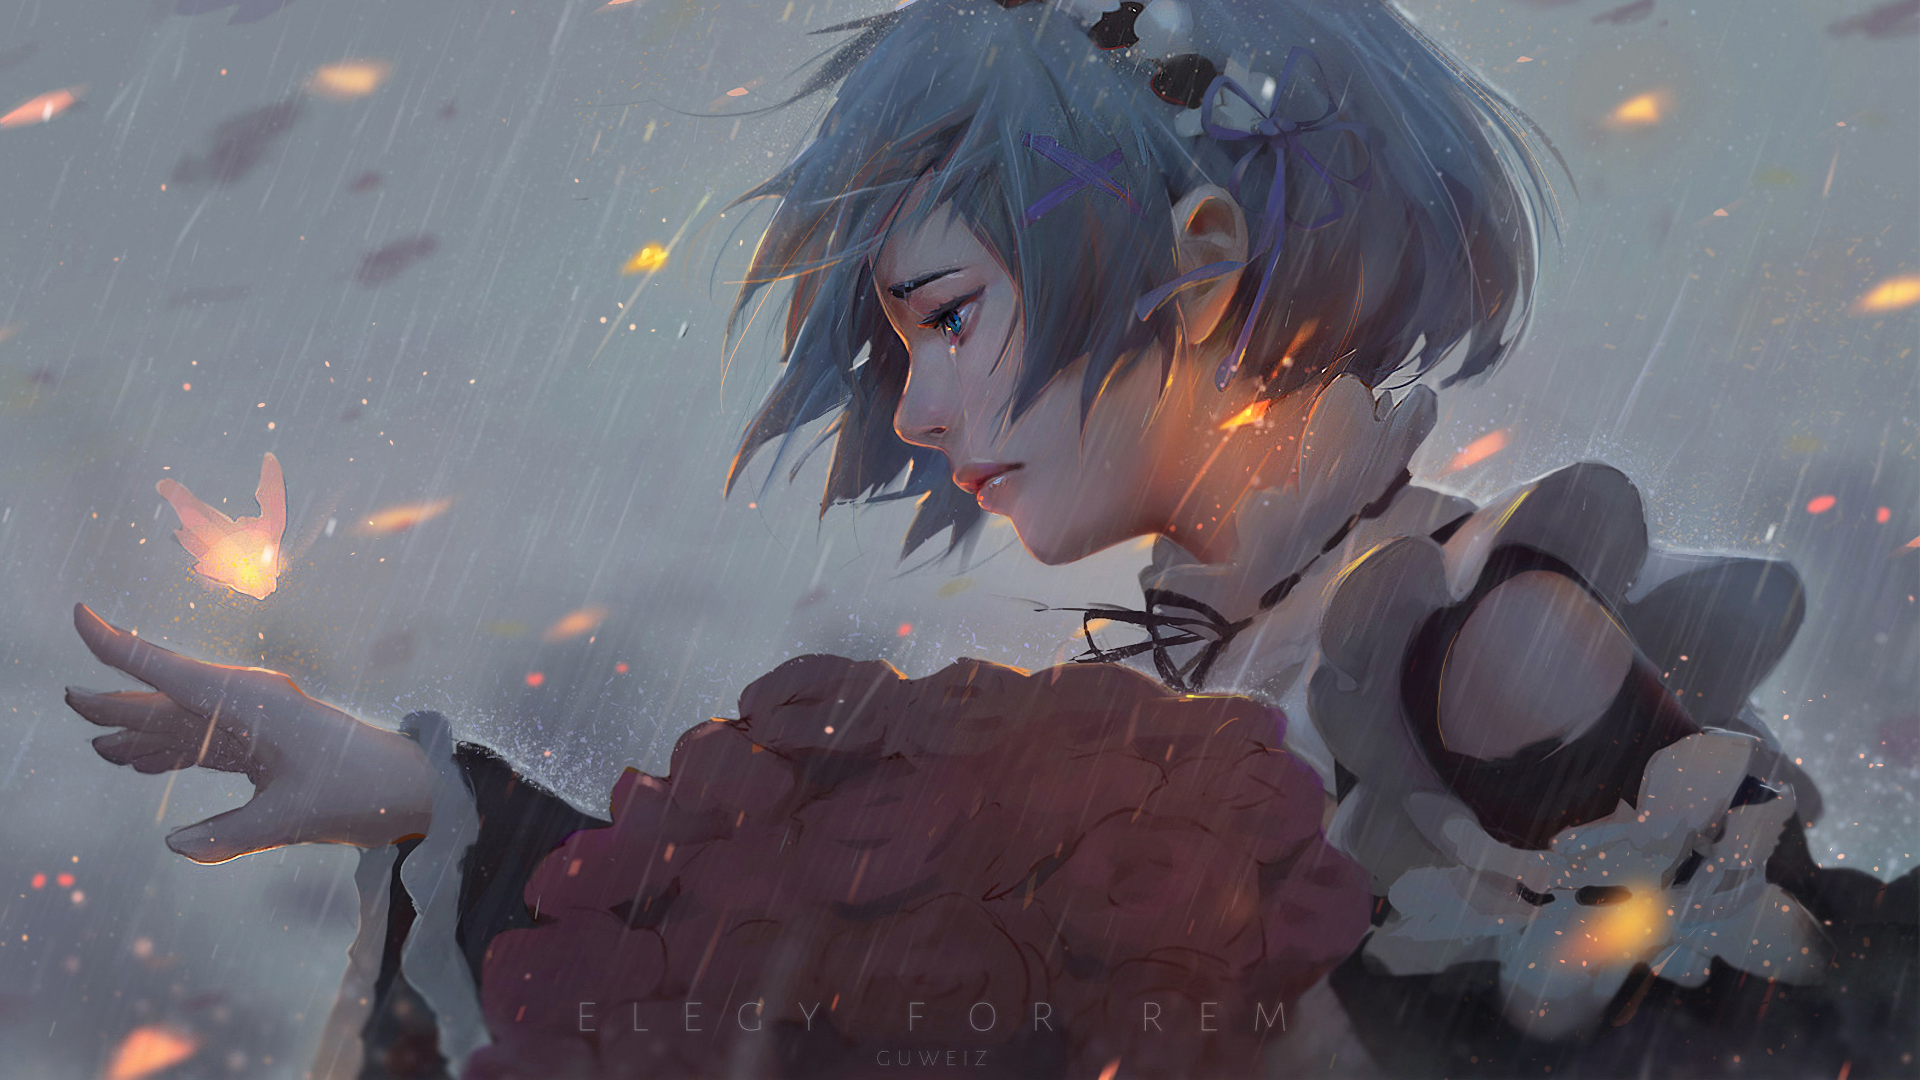 Anime - Re:ZERO -Starting Life in Another World-  Rem (Re:ZERO) Re:Zero Wallpaper